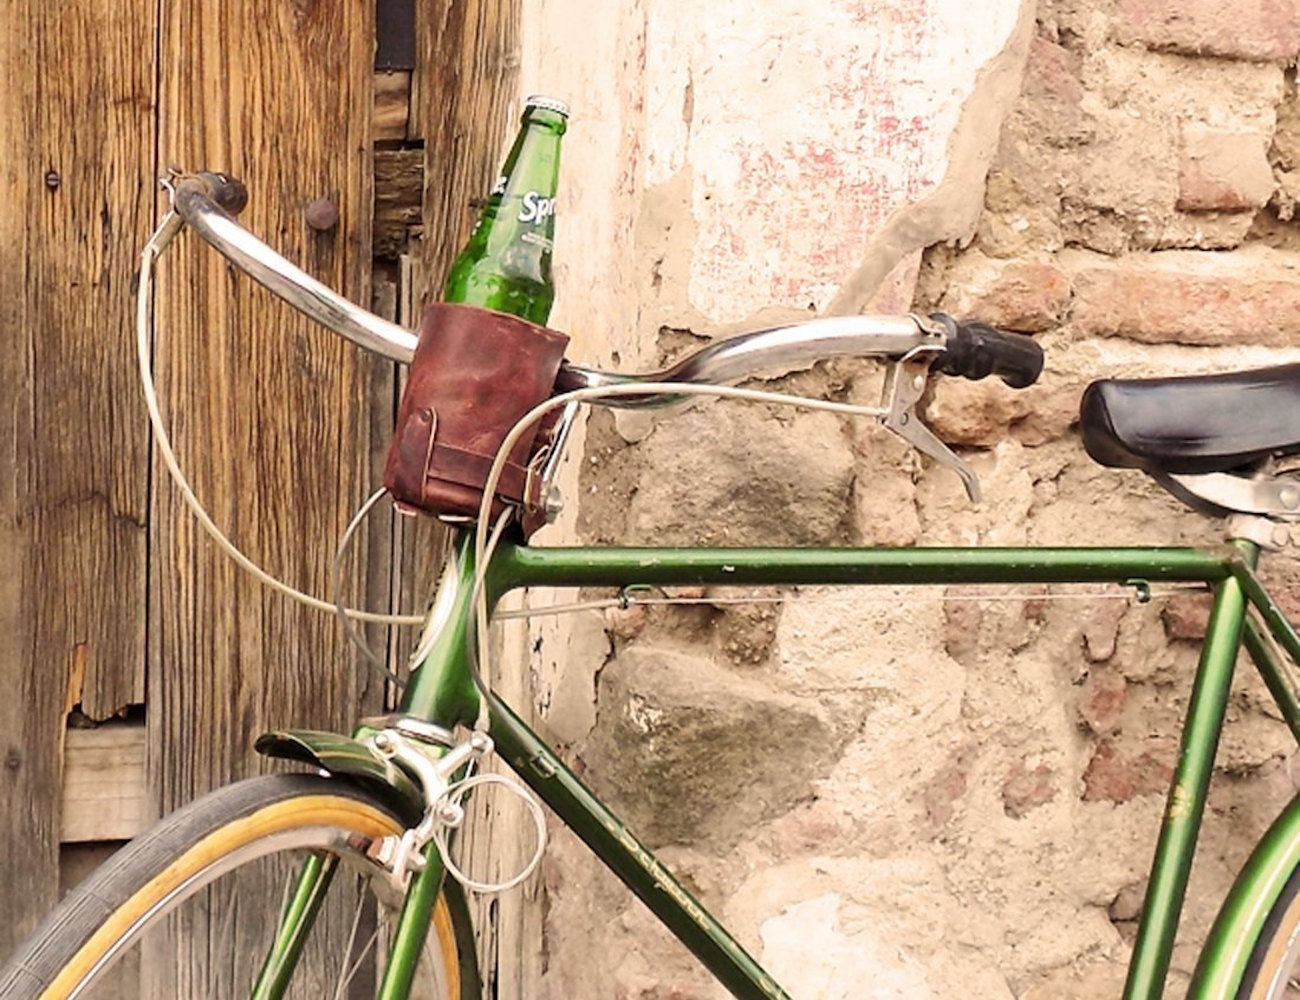 Cruzy Kozy Leather Bike Cup Holder by Hide & Drink